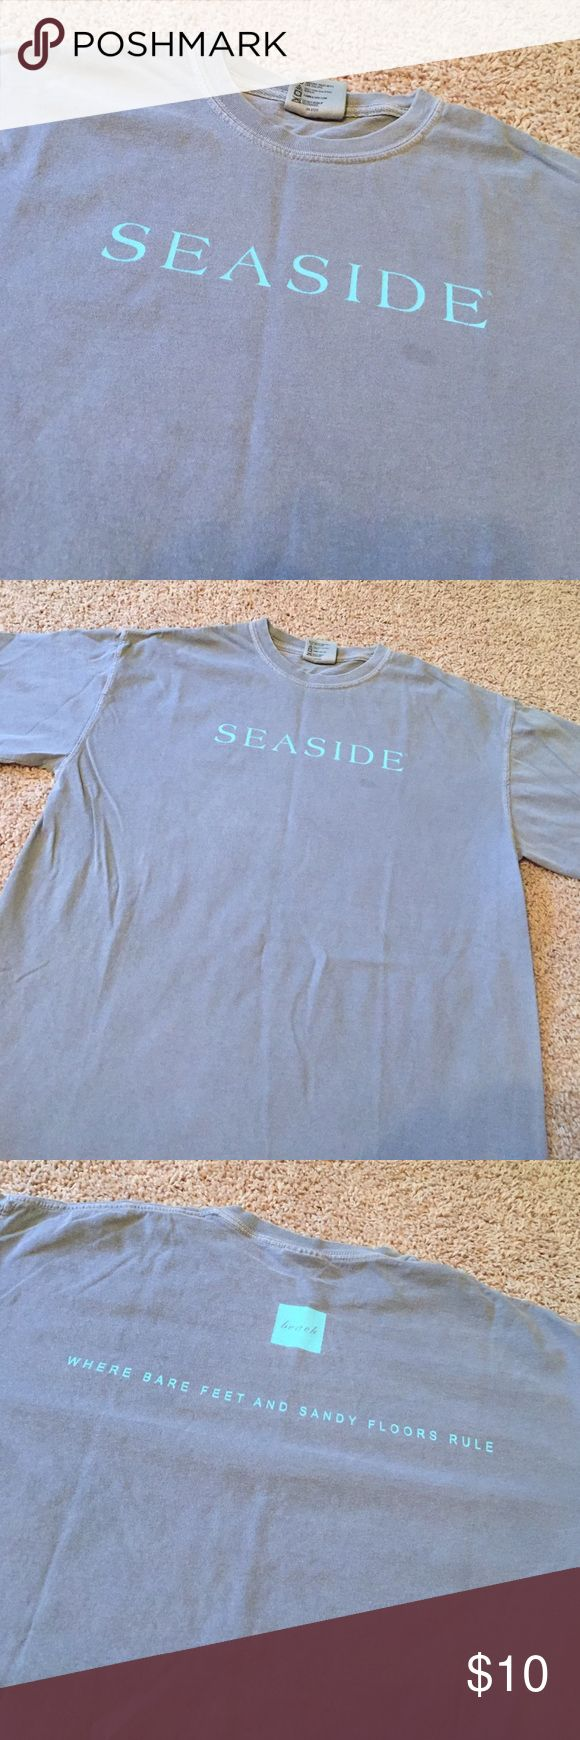 """Seaside """"Where Bare Feet & Sandy Floor Rule"""" Shirt Seaside """"Where Bare Feet & Sandy Floor Rule"""" Shirt!! Size: Medium!! Worn a handful of times!!! There is a small stain under the D in Seaside that won't come out!!! Other than that, it's in perfect condition!!! comfort colors Tops Tees - Short Sleeve"""